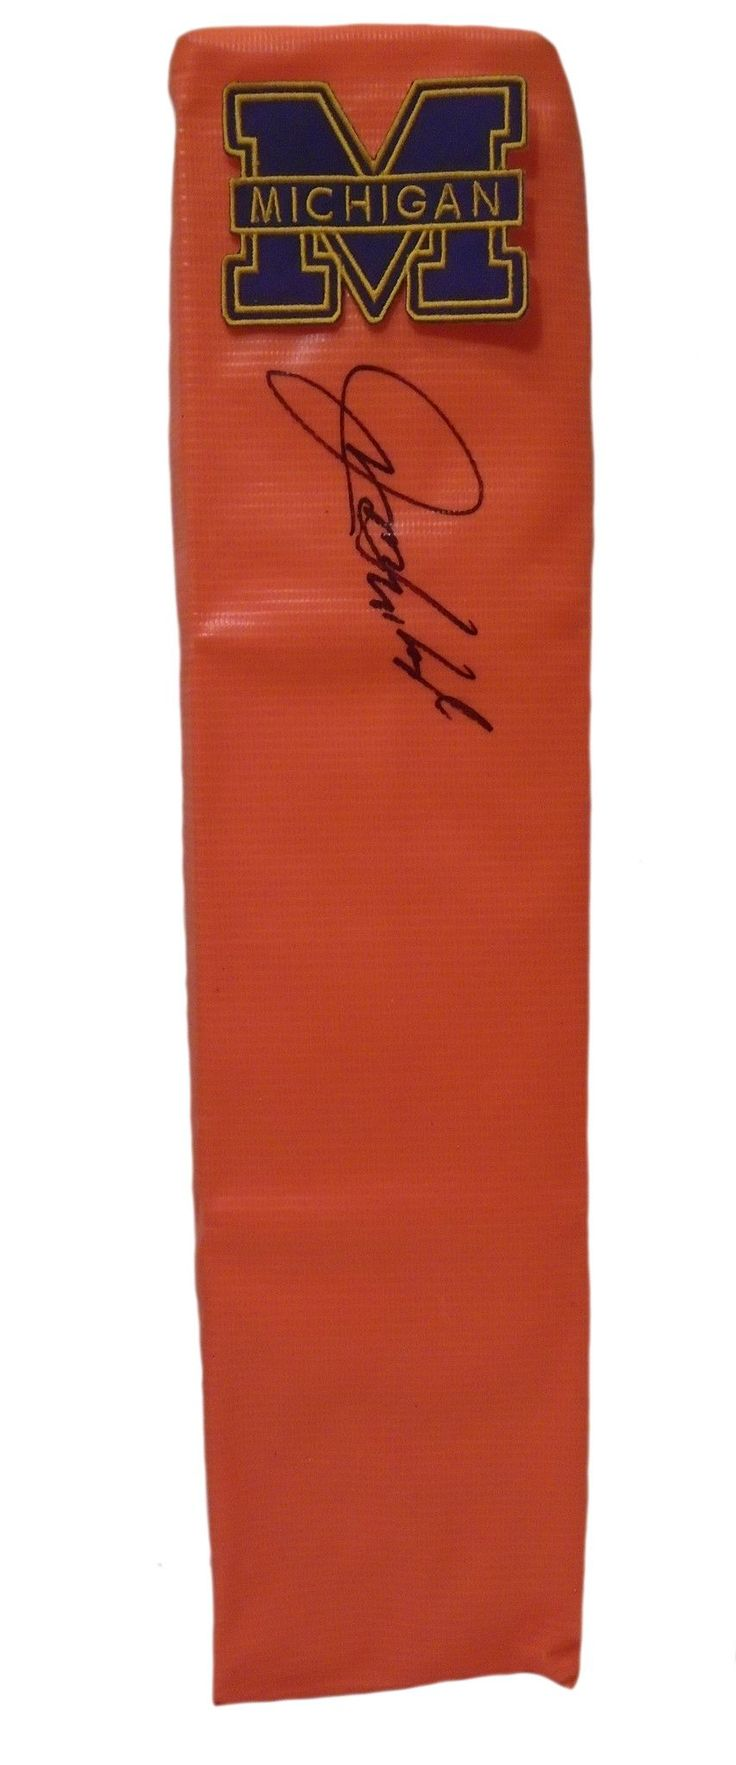 Jim Harbaugh Autographed Michigan Wolverines Full Size Football End Zone…